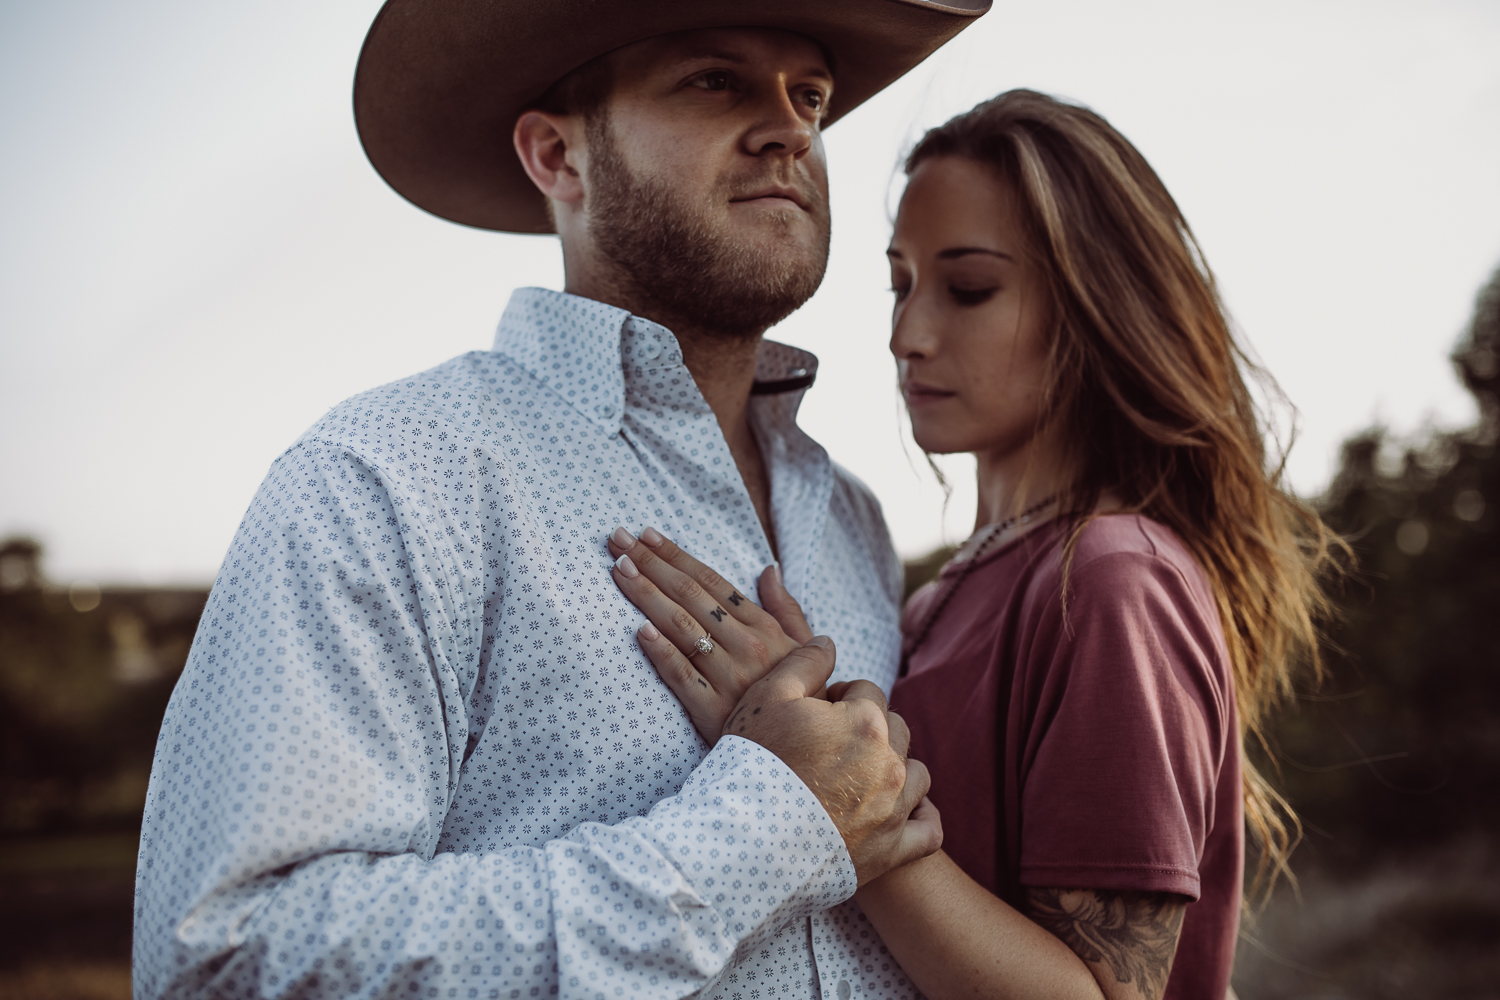 laura-beck-photography-best-lubbock-texas-couples-love-lifestyle-engagement-wedding-anniversary-portraits-89.jpg